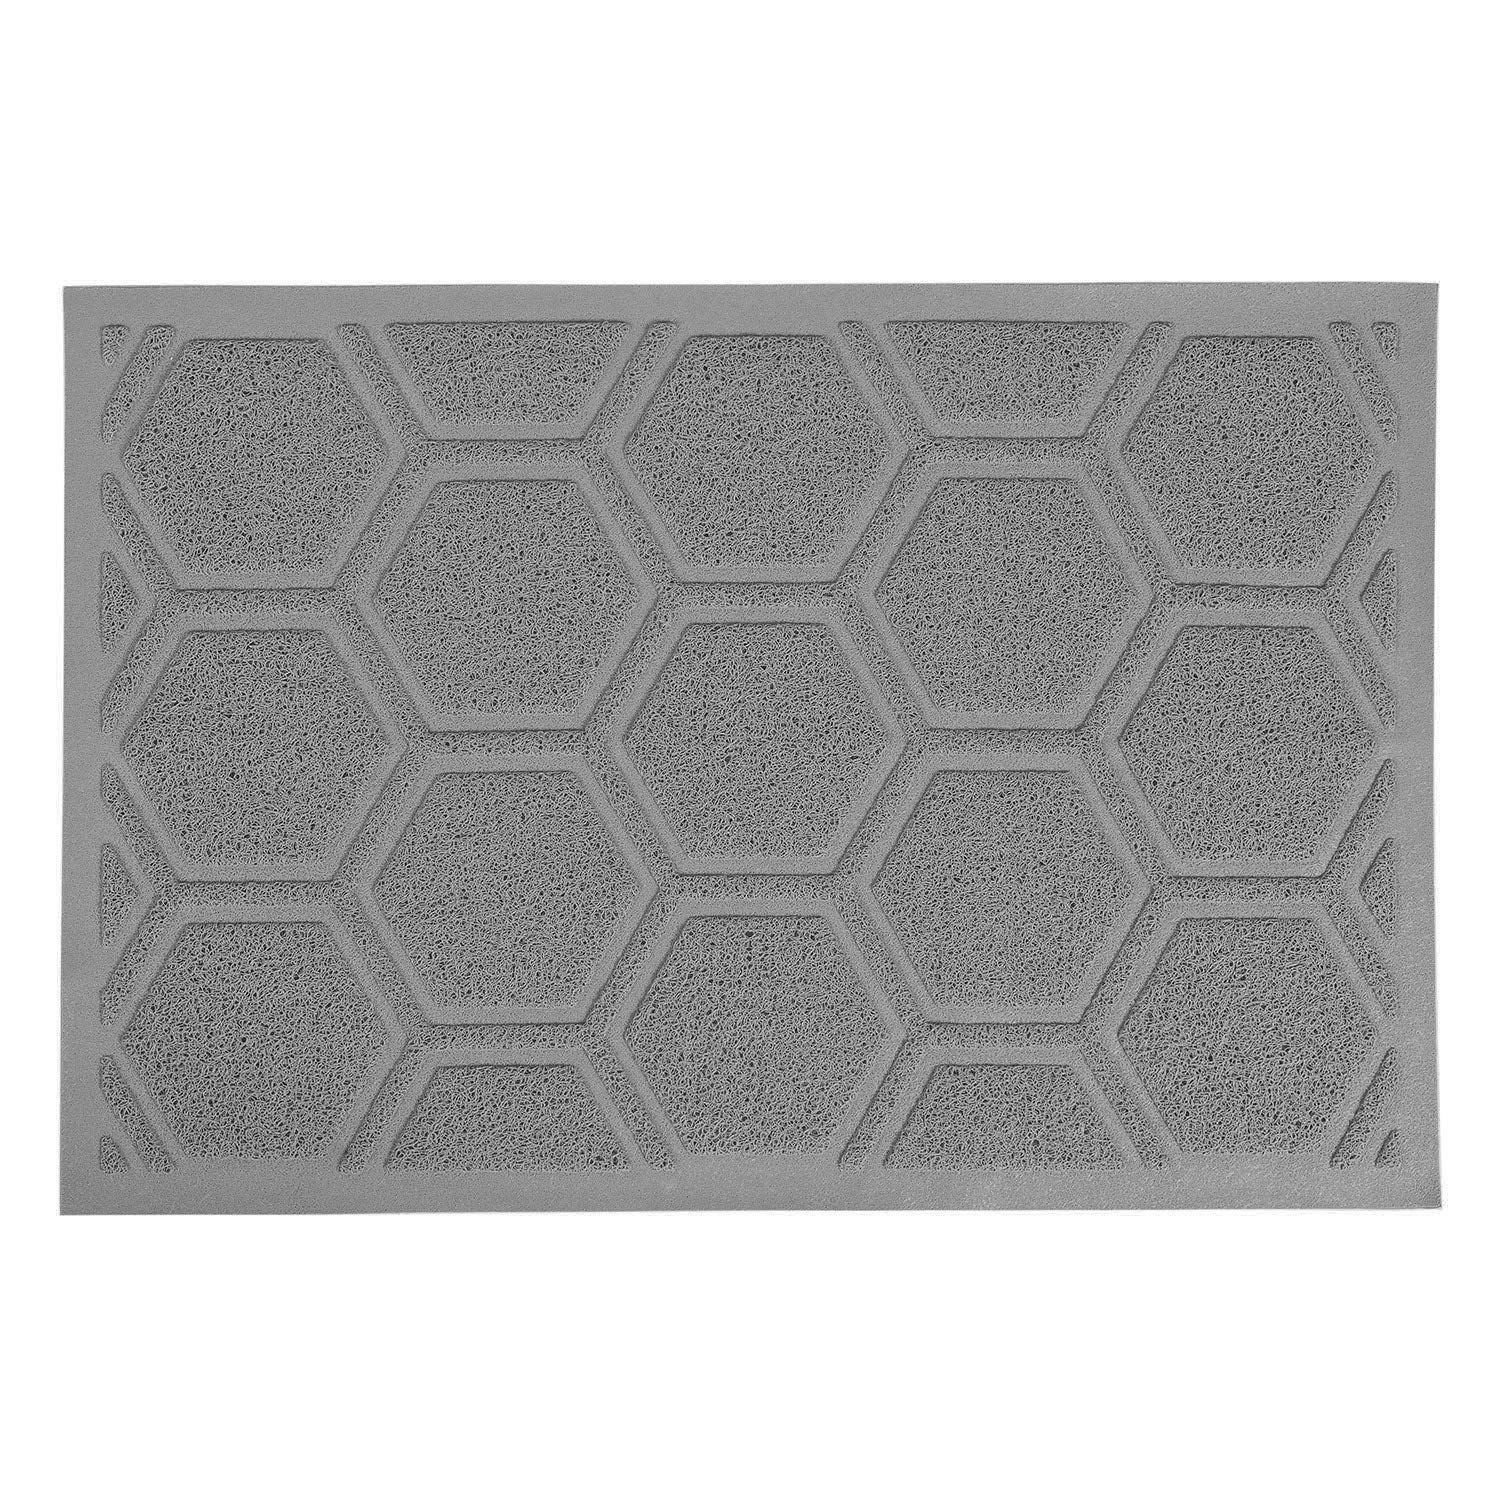 SACRONS Cat Litter Mat Extra Large 35 25 Soft on Paws Waterproof Easy to Clean BPA Free Gray Purple